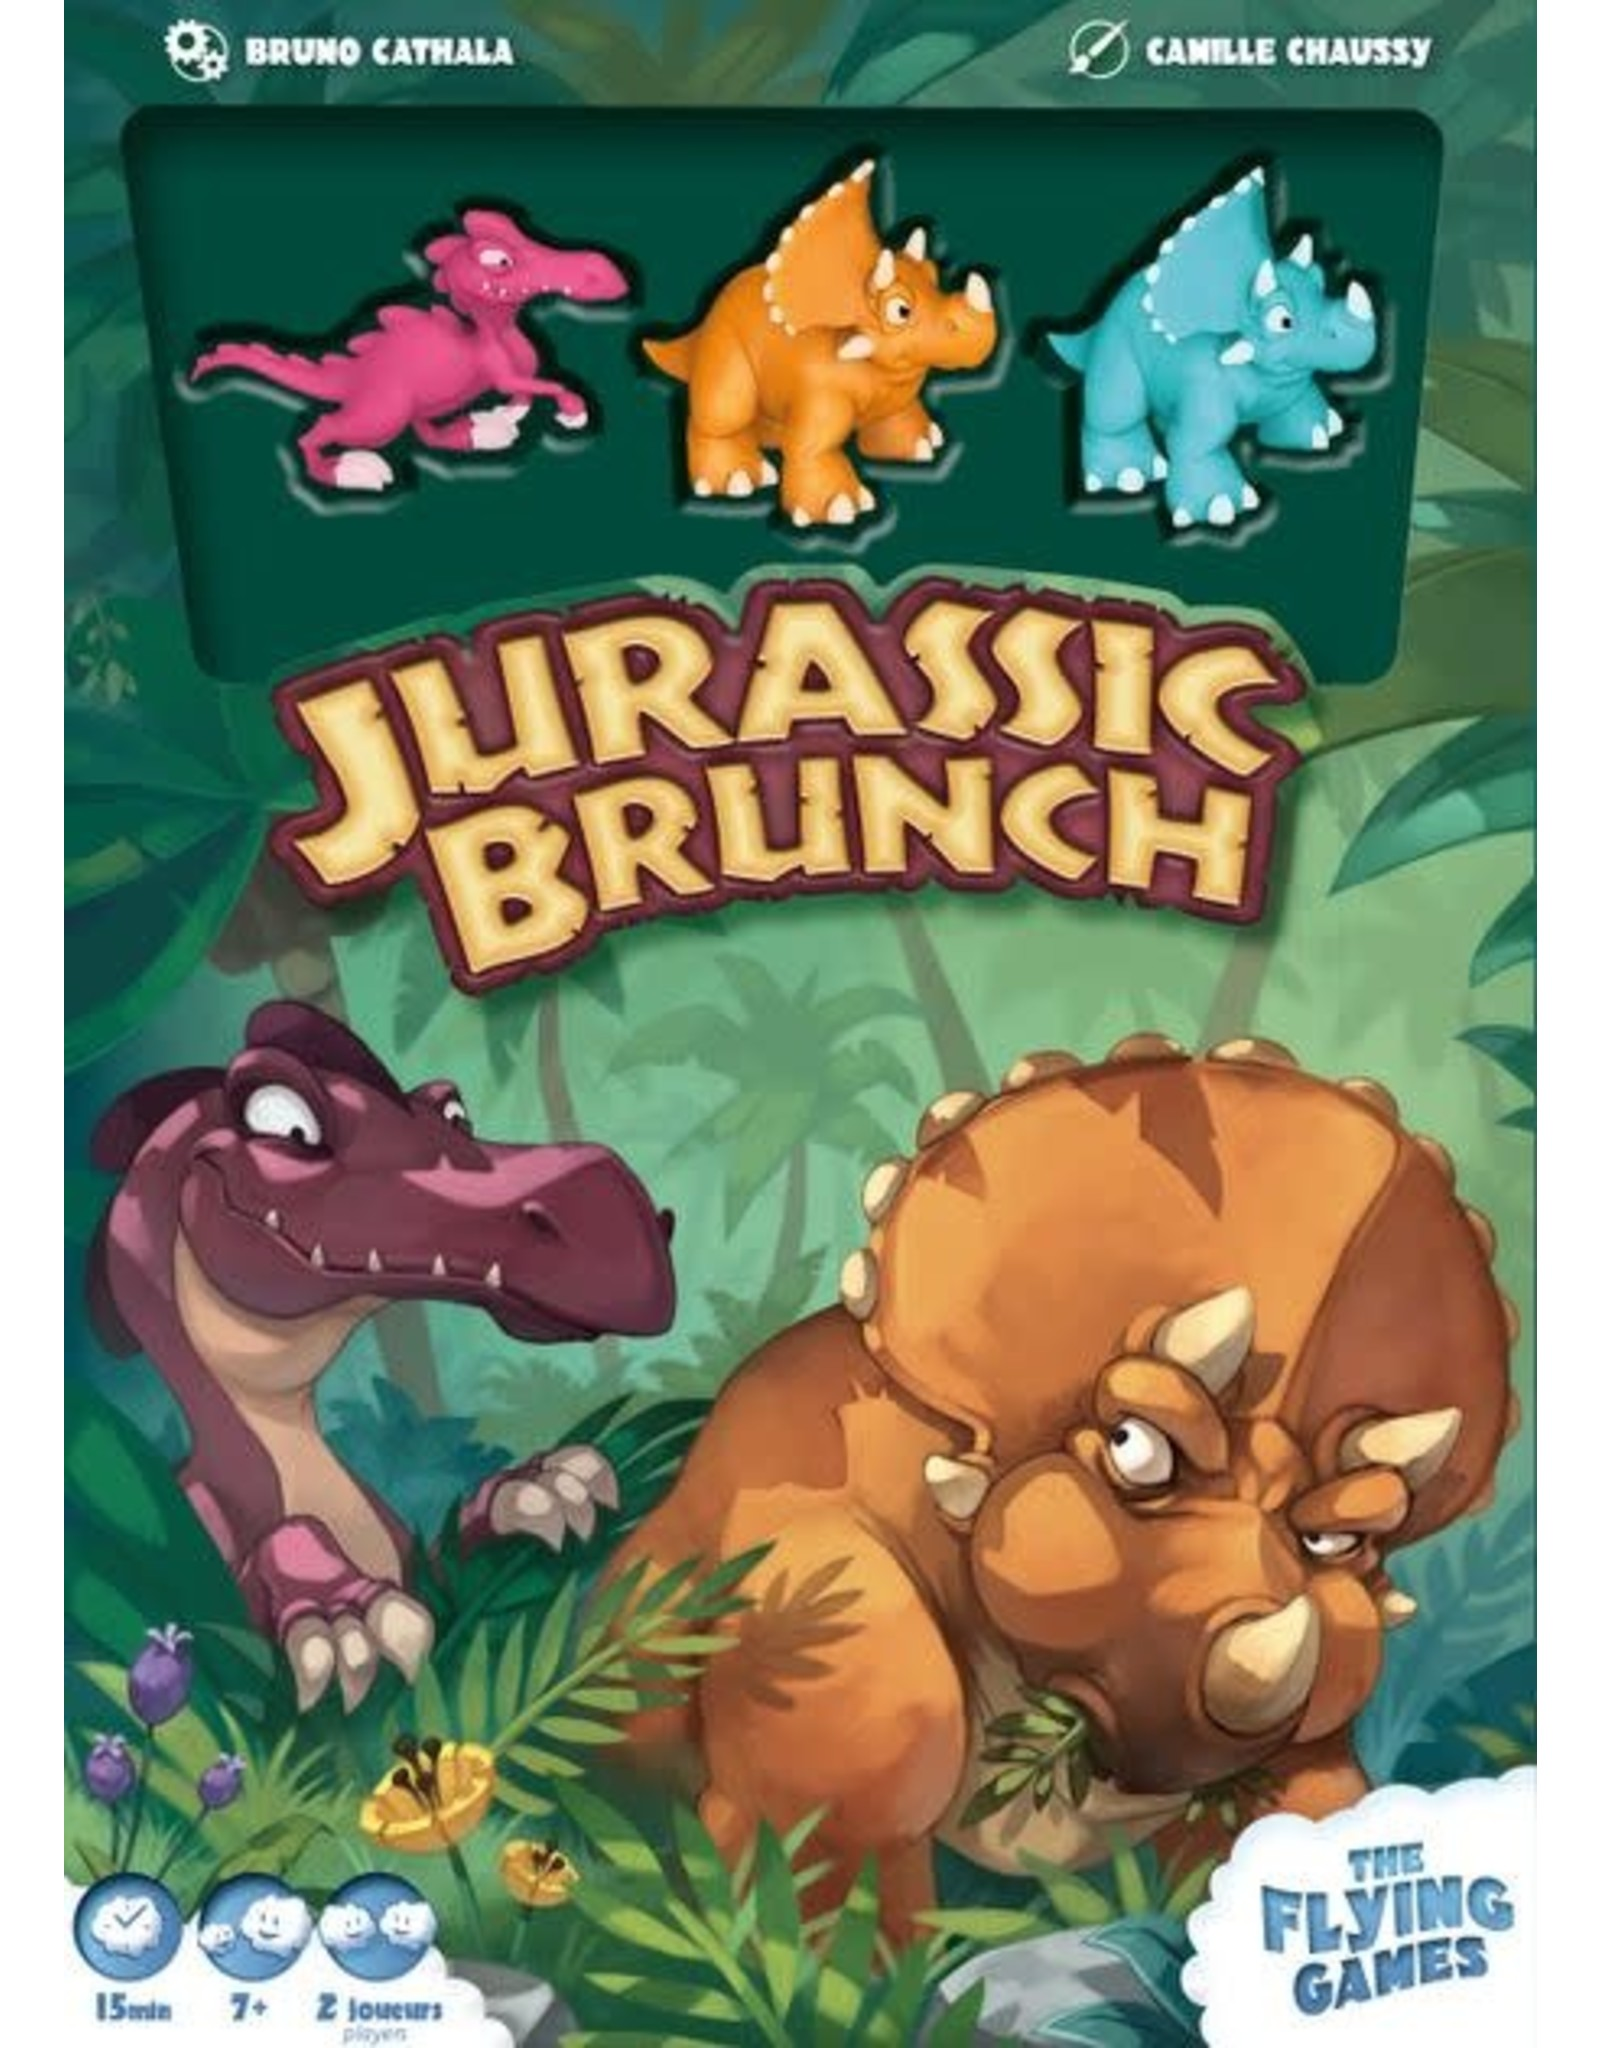 The Flying Games Jurassic Brunch